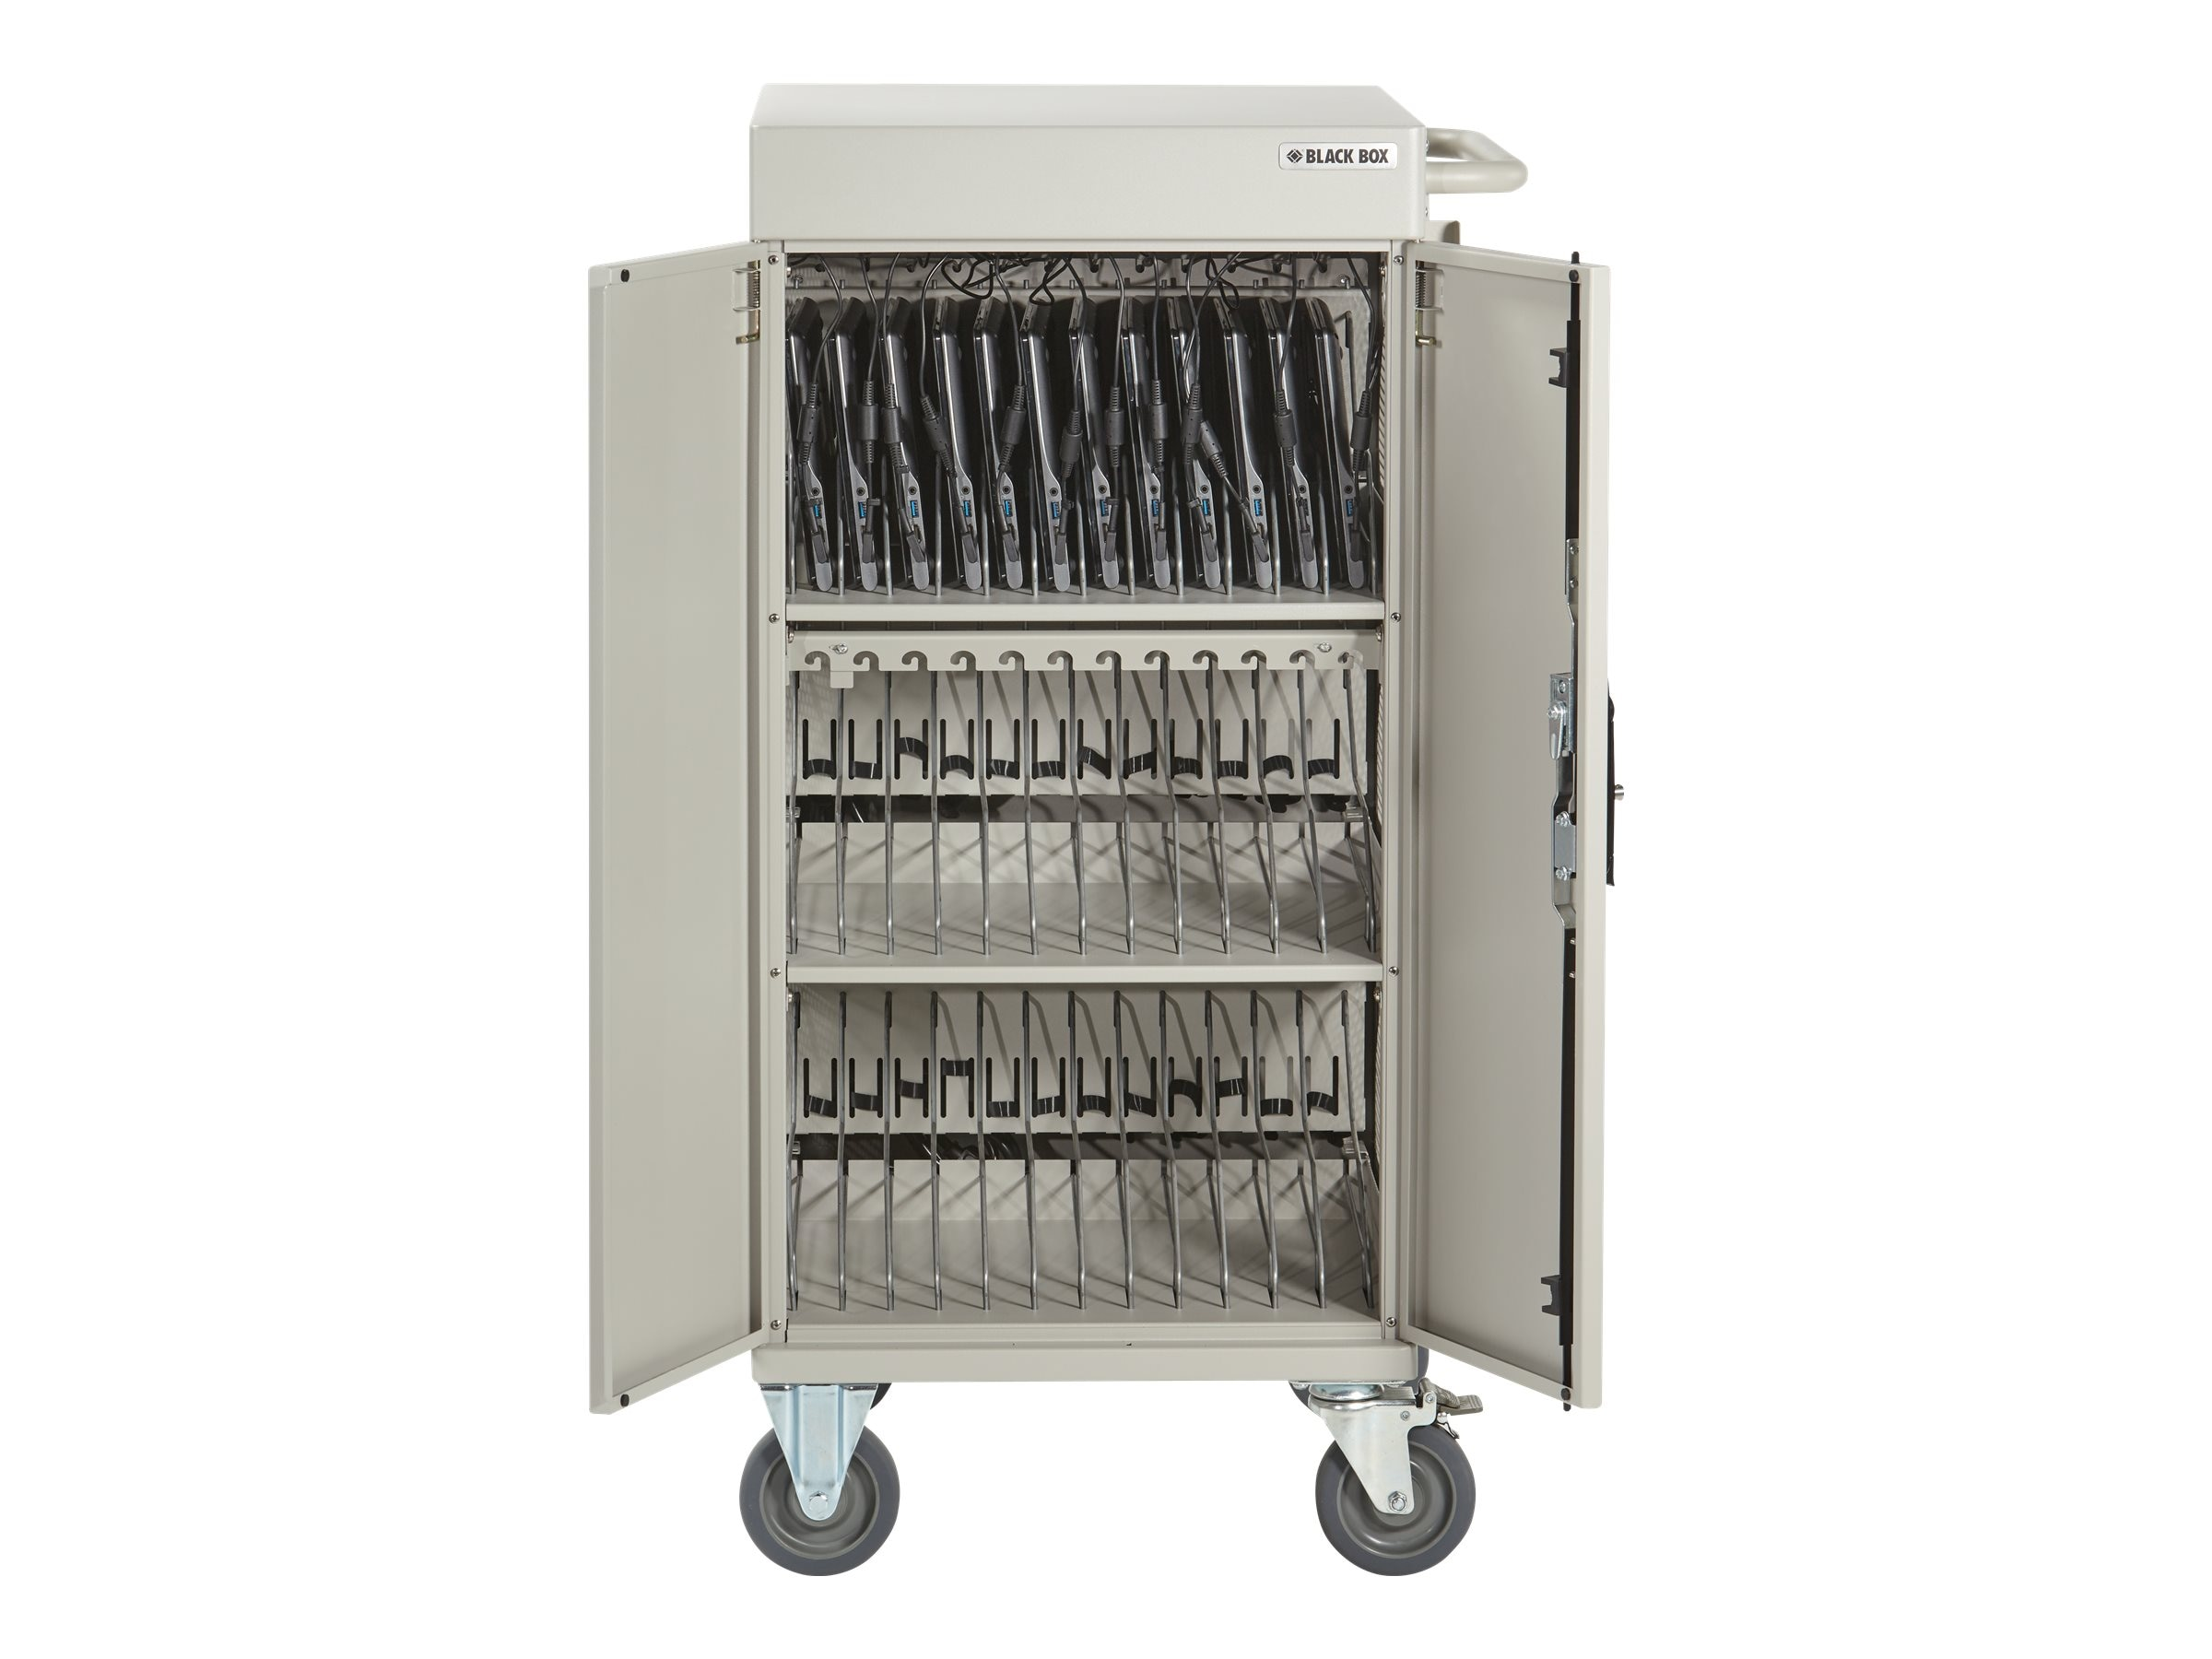 Black Box 36-Unit Standard Cart - Standard Charging, Hinged Door, Keylock, Front Cable Management